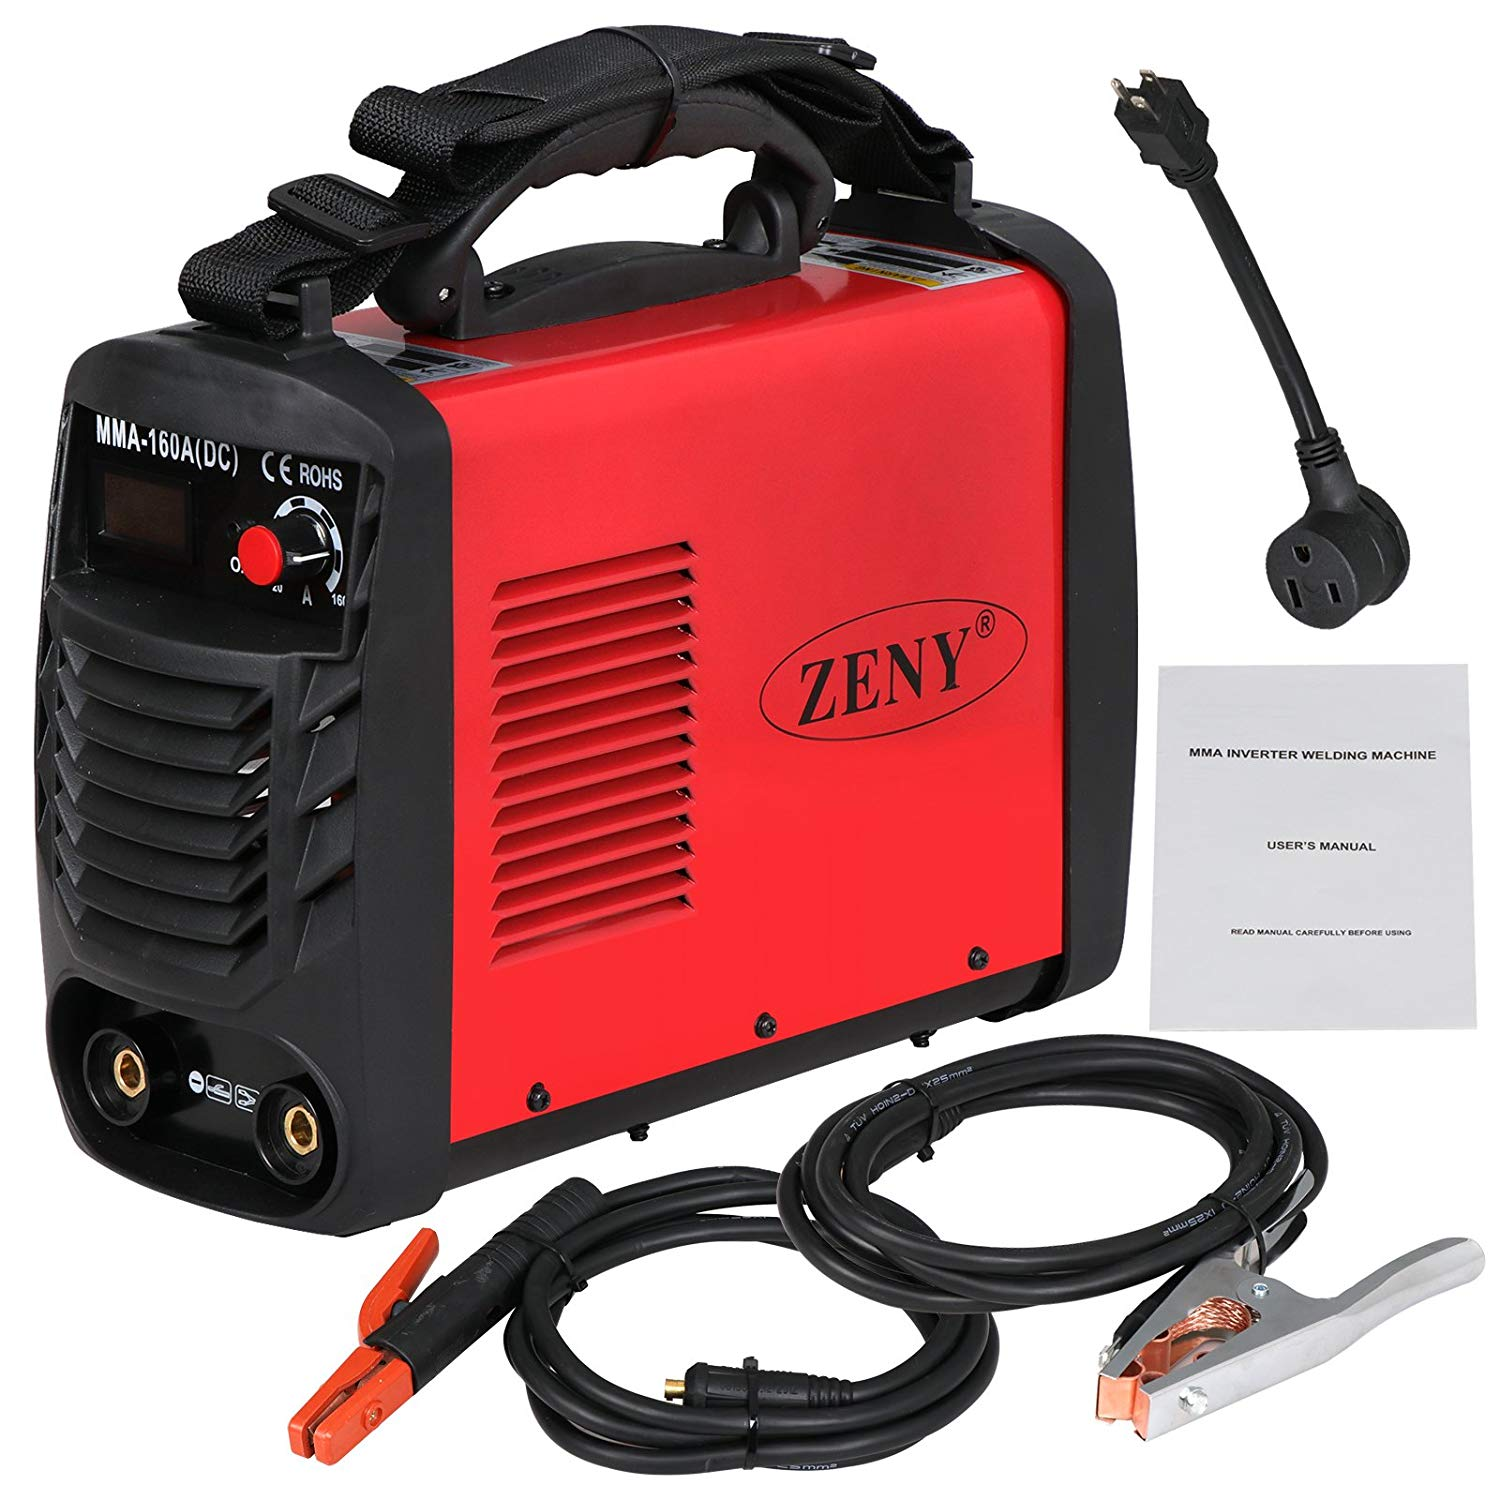 zeny welder reviews